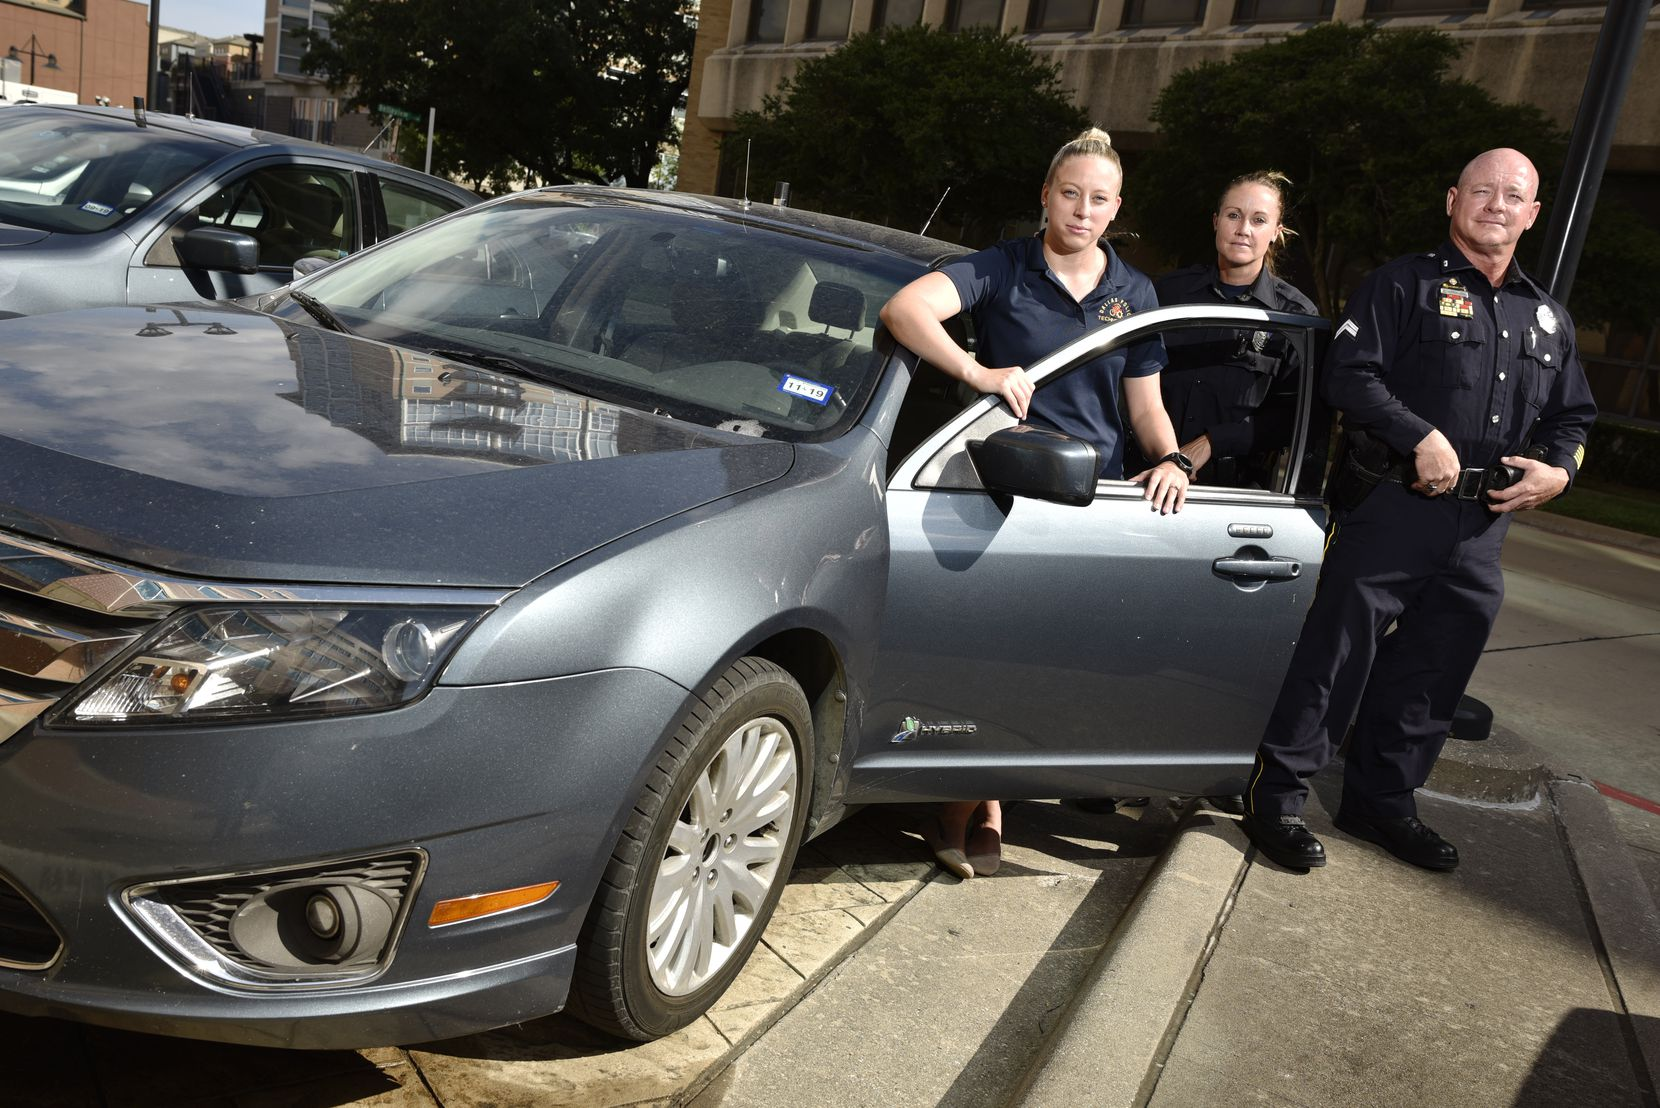 L-R: Dallas Police Officers with the Mobile Surveillance Unit, Manager Emily Davis, left, Tara Smith, and Kenneth Strauss, pose with a DPD unmarked vehicle (not a bait car) outside of DPD headquarters in Dallas.